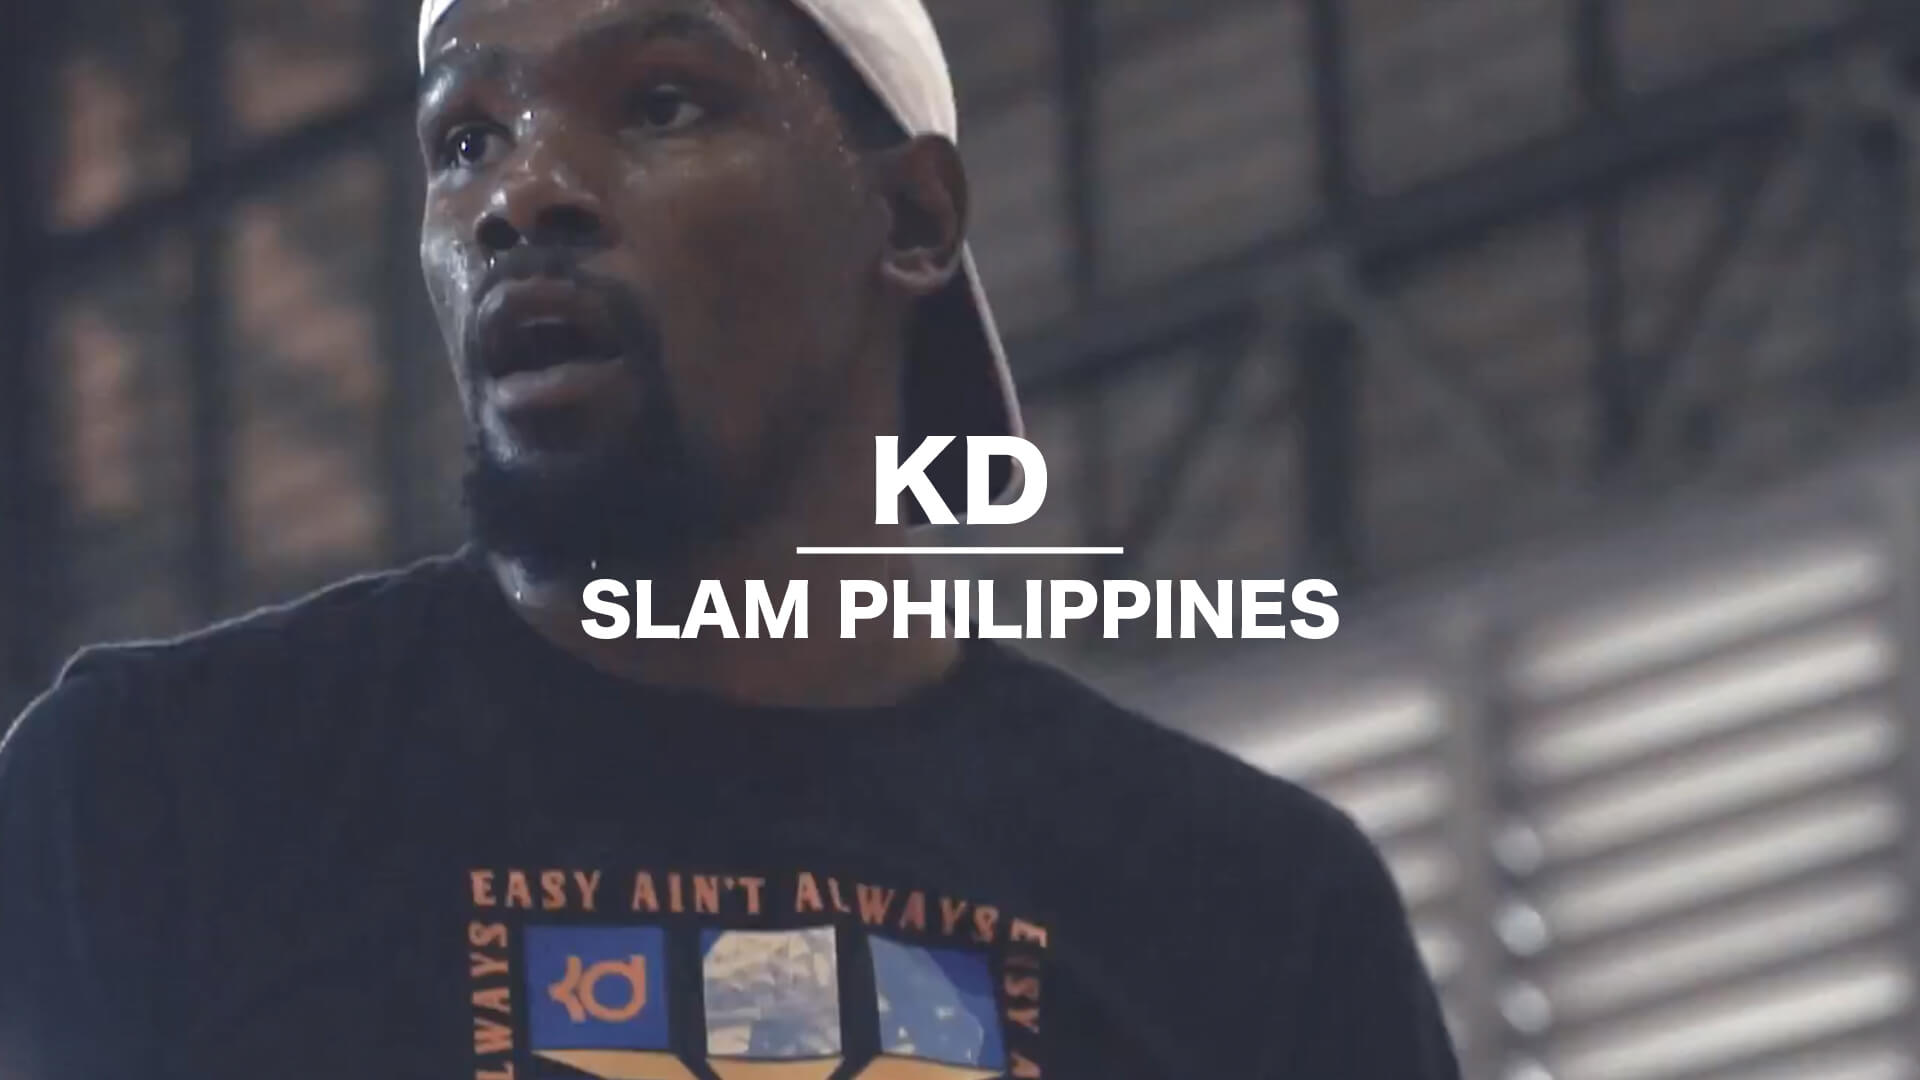 Project KD Slam Philippines Digital